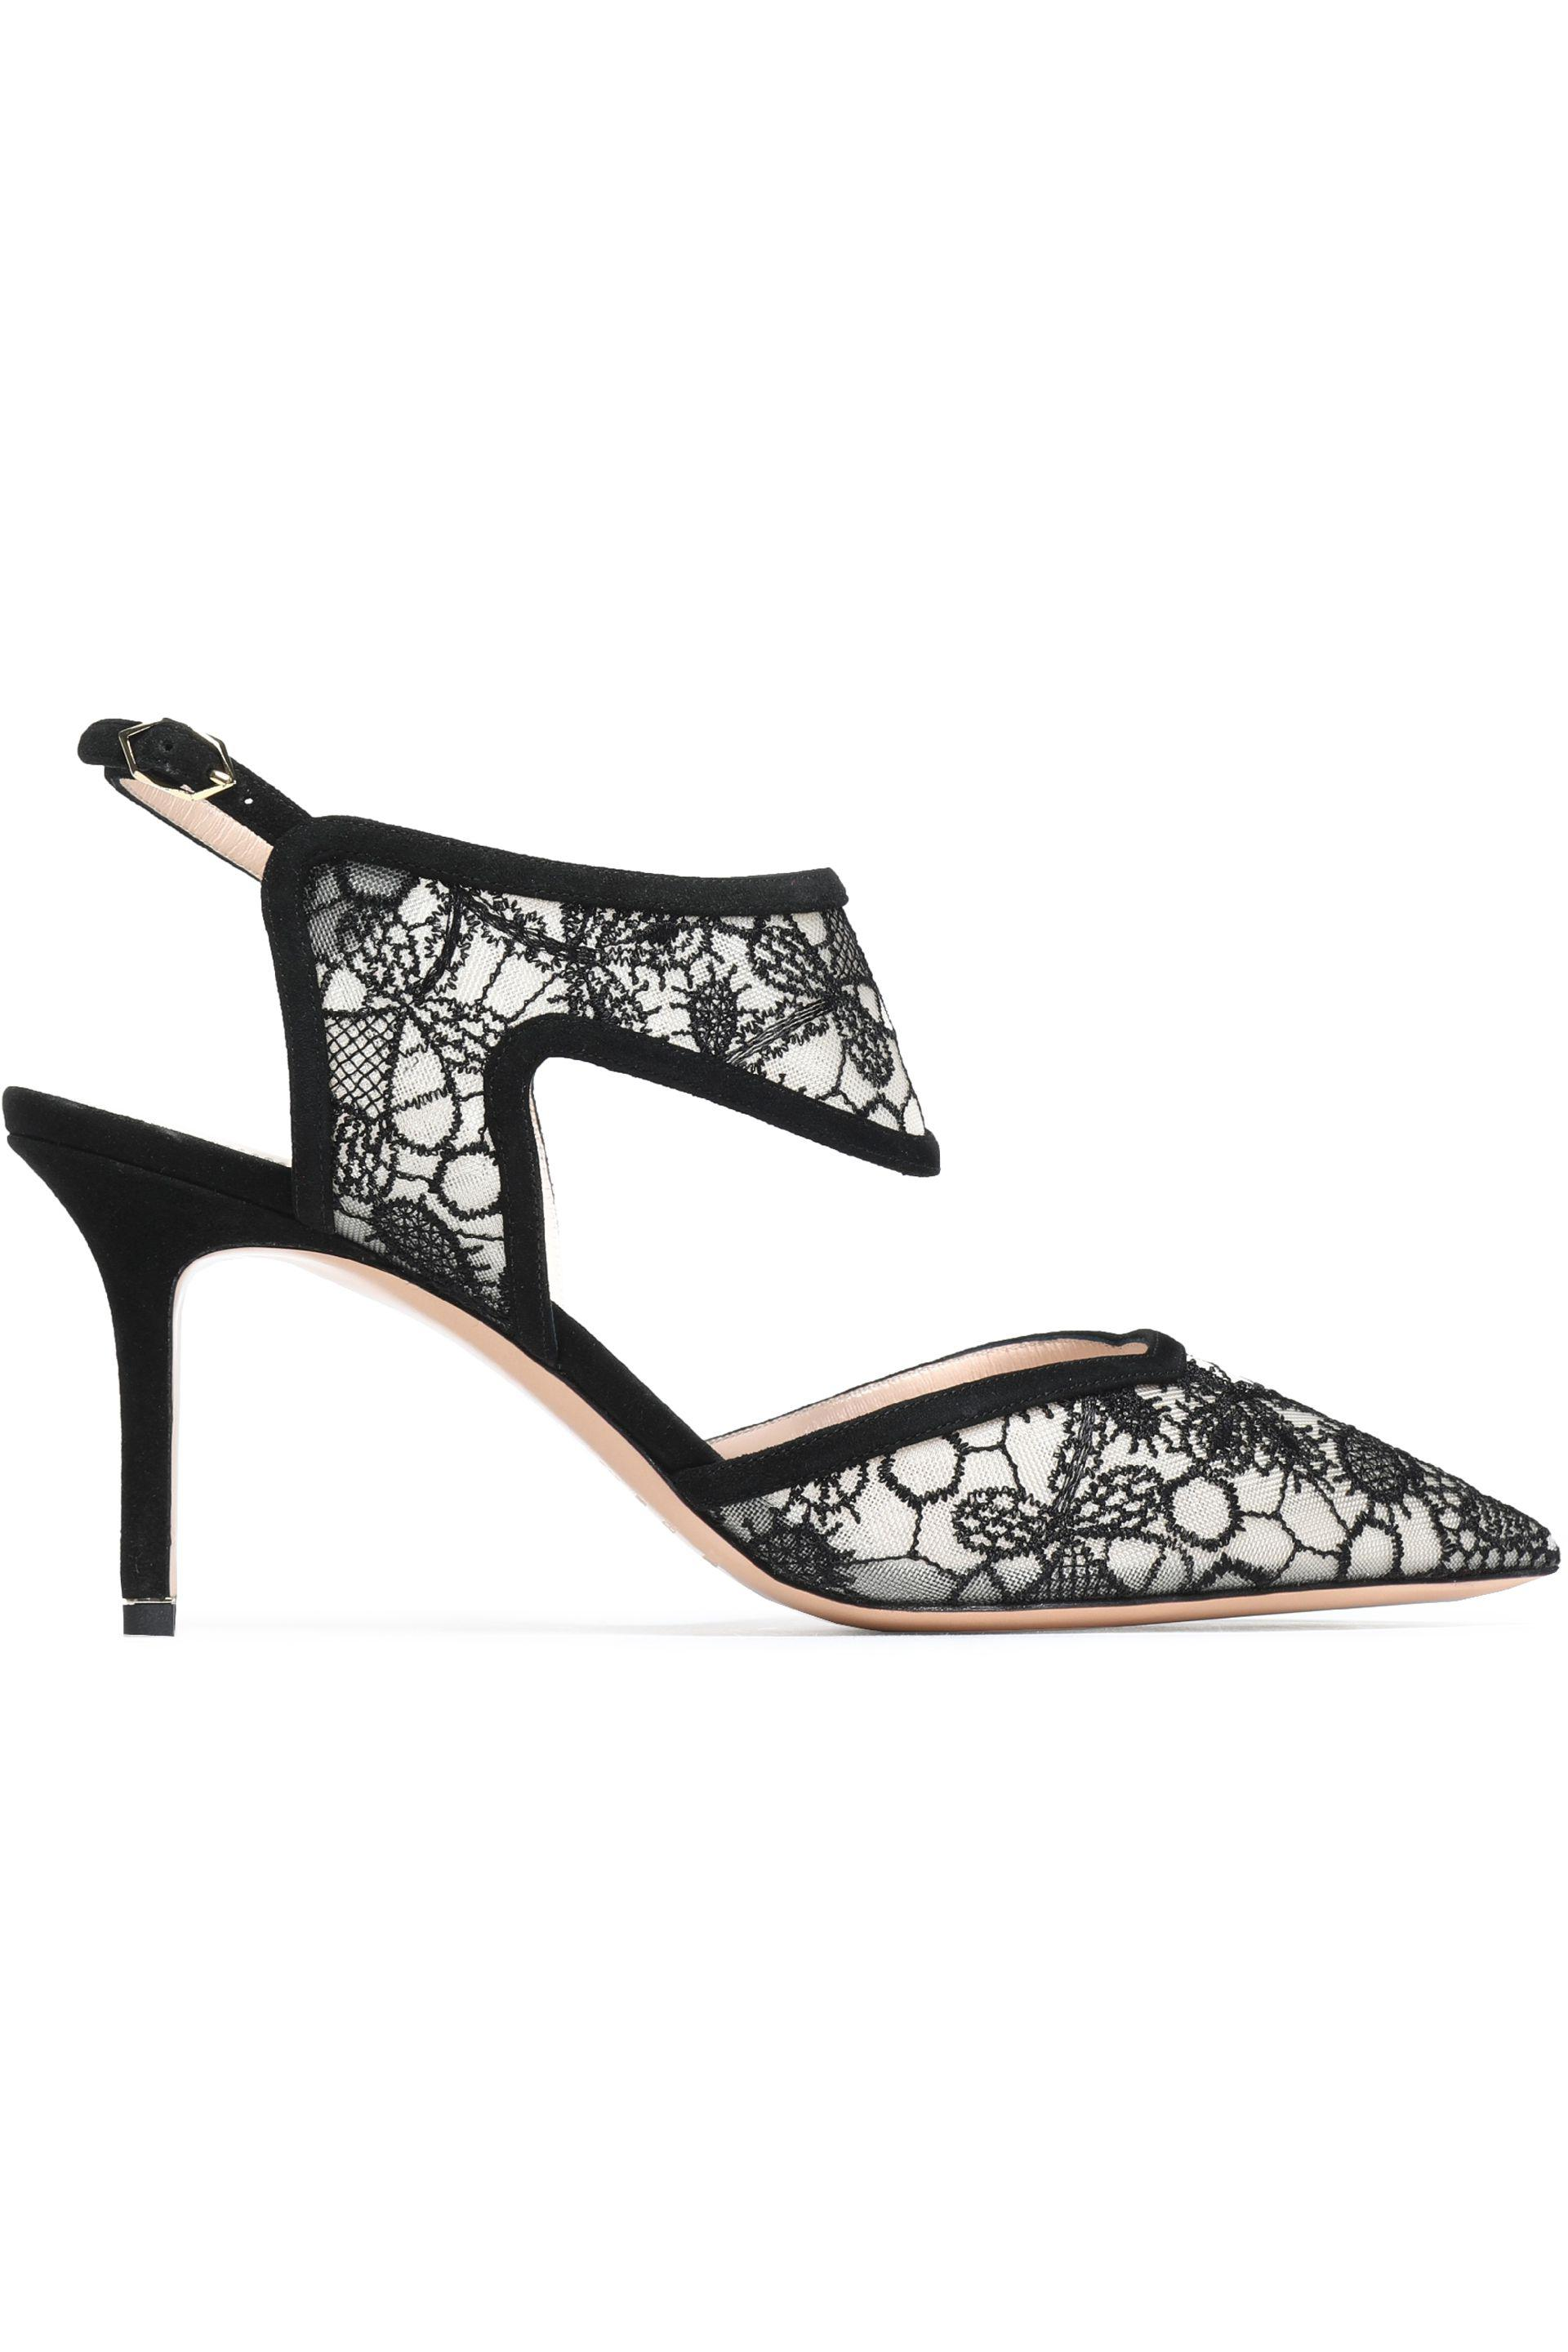 f5194b55172 Nicholas Kirkwood. Women s Black Suede-trimmed Embroidered Mesh Court Shoes